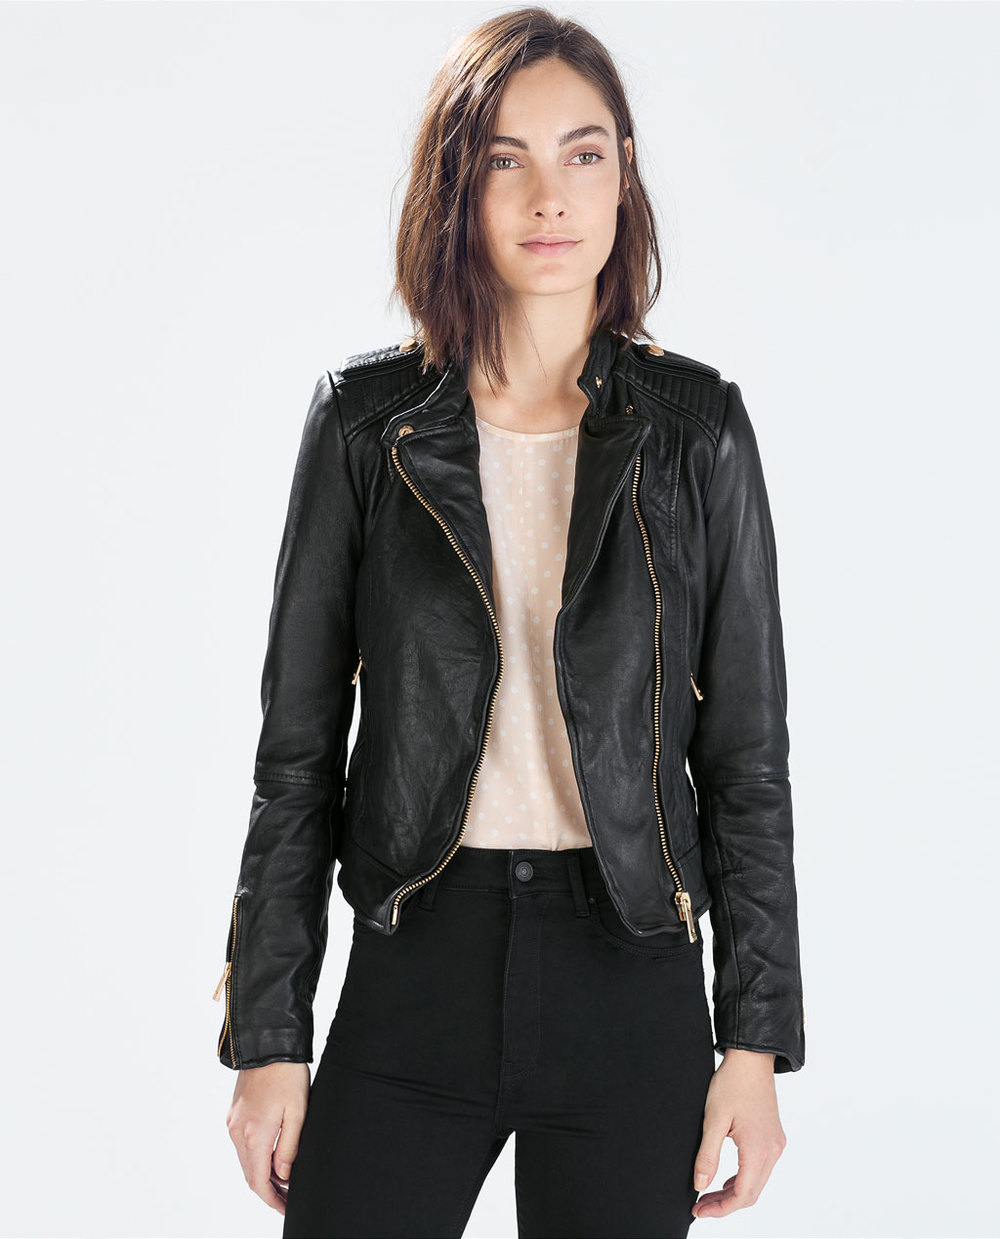 Zara  Leather Biker Jacket  ($279)